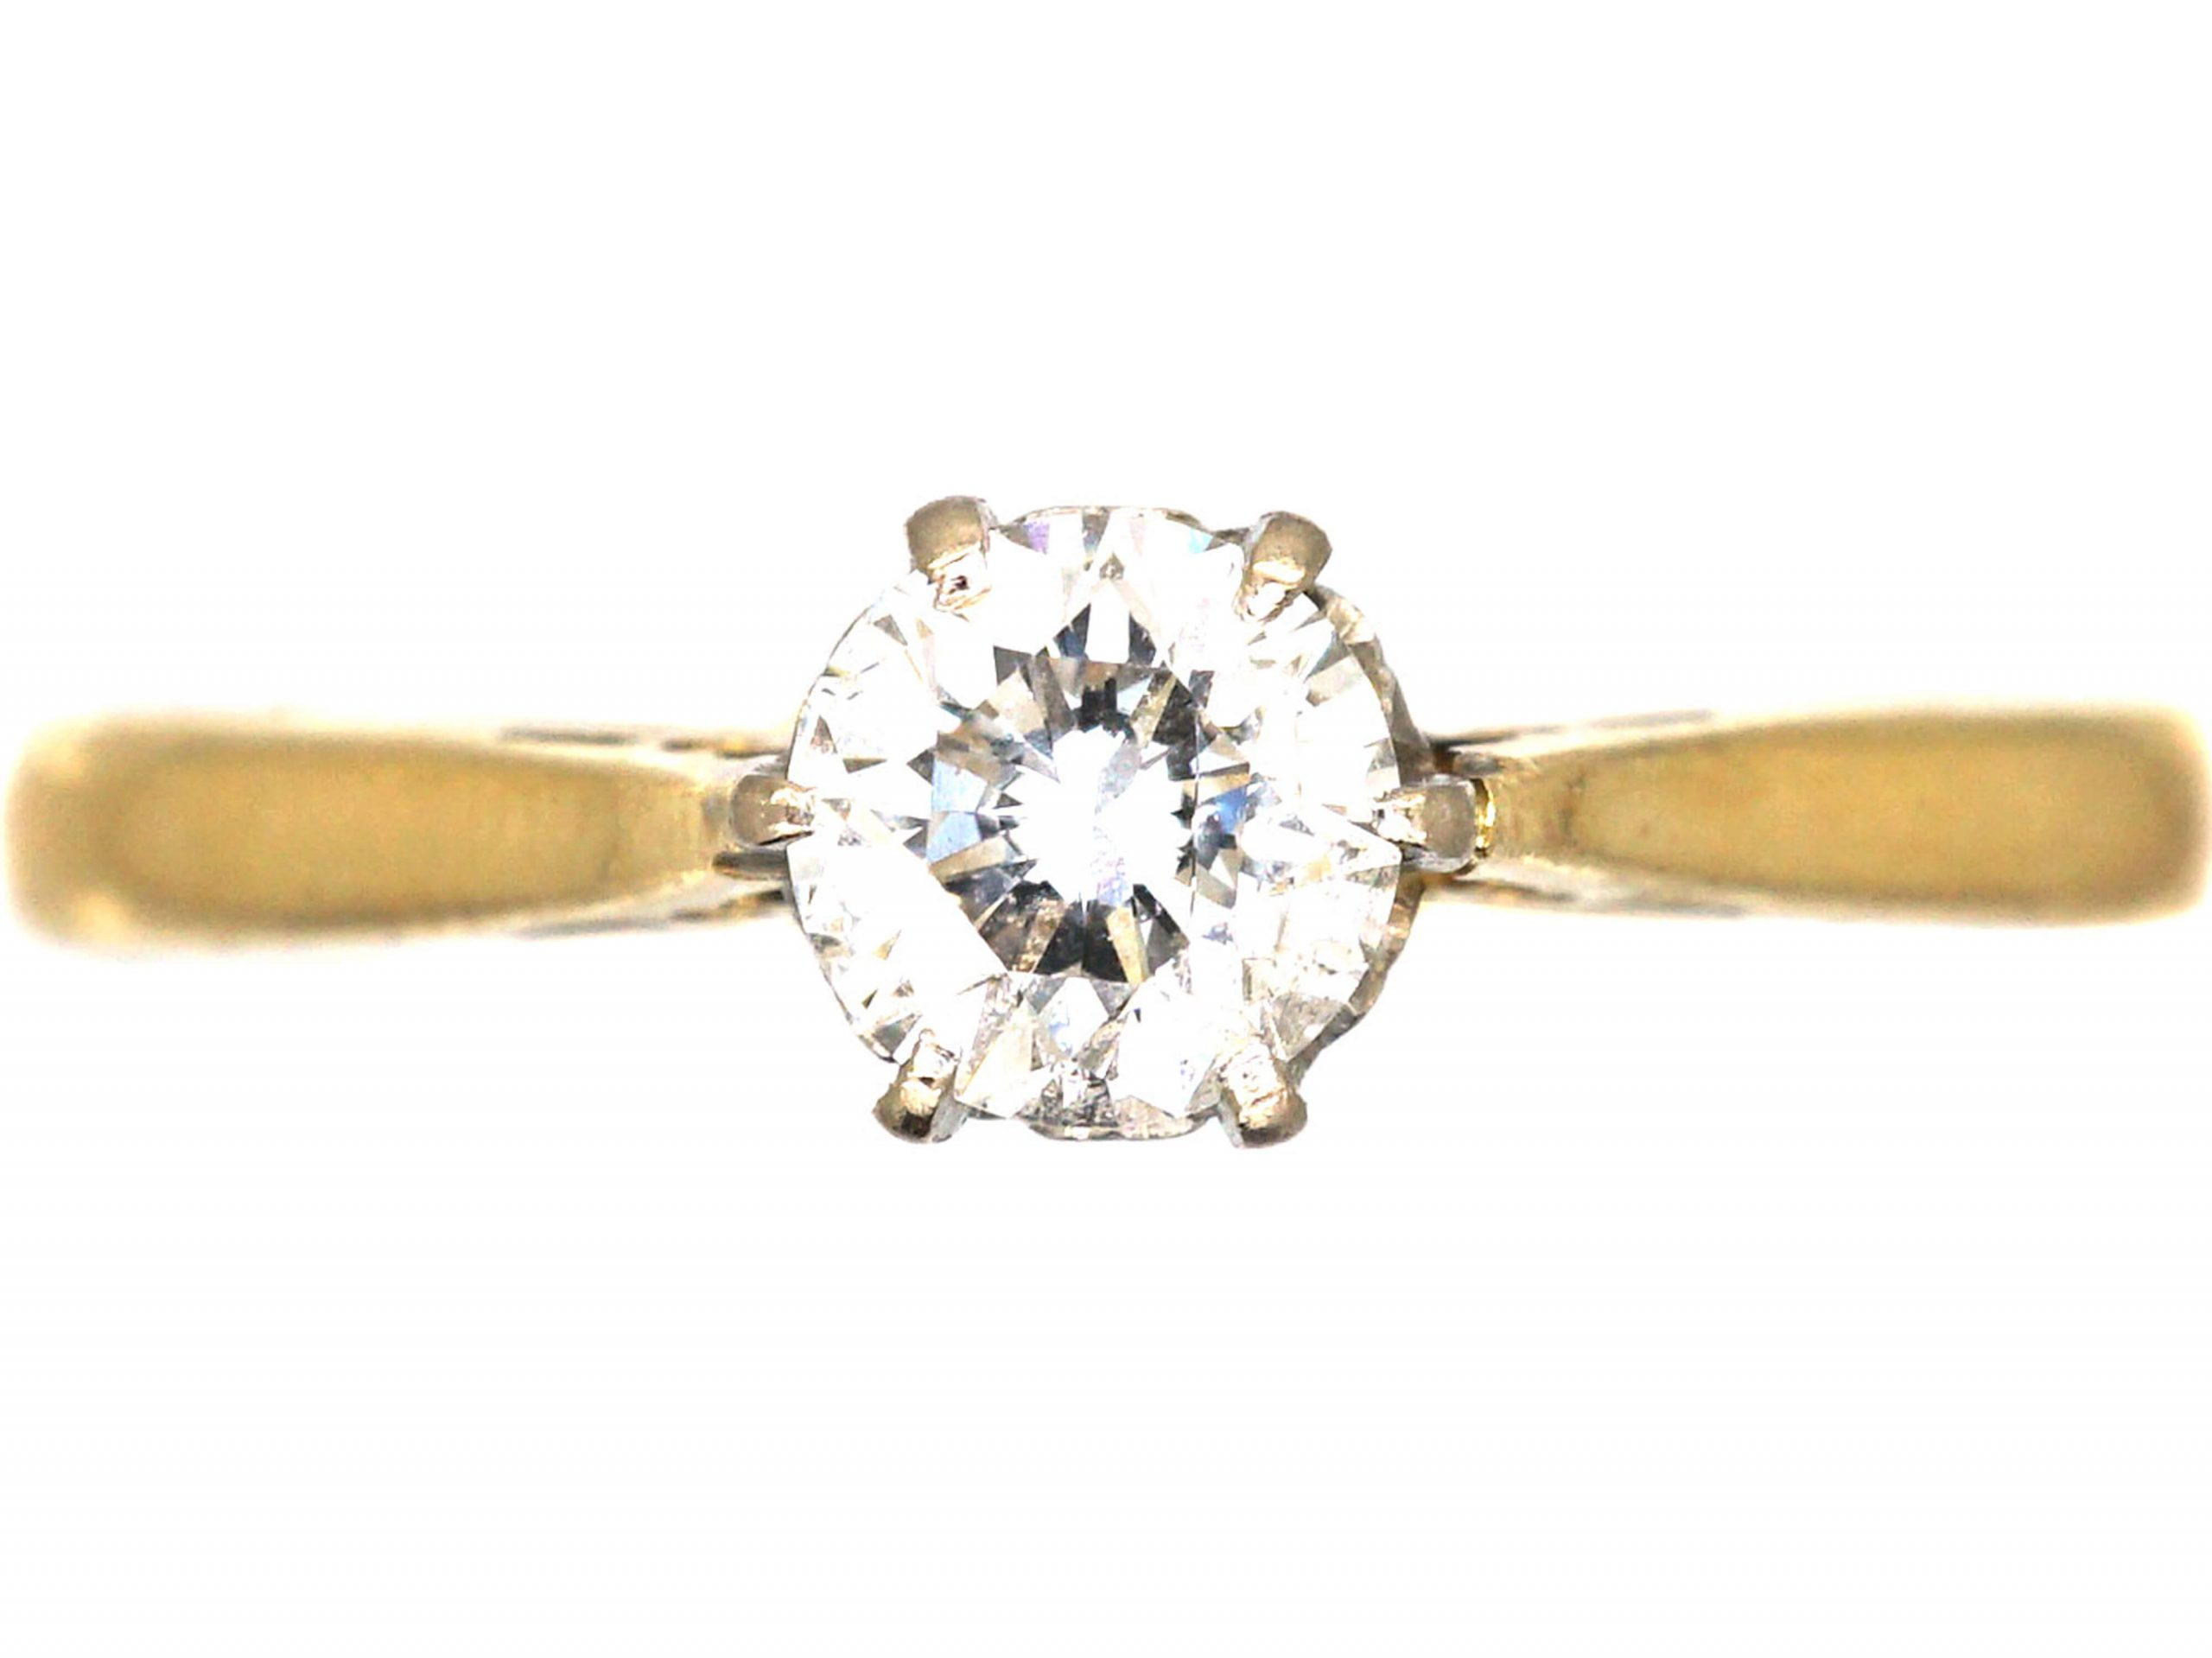 18ct Gold, Diamond Solitaire Ring